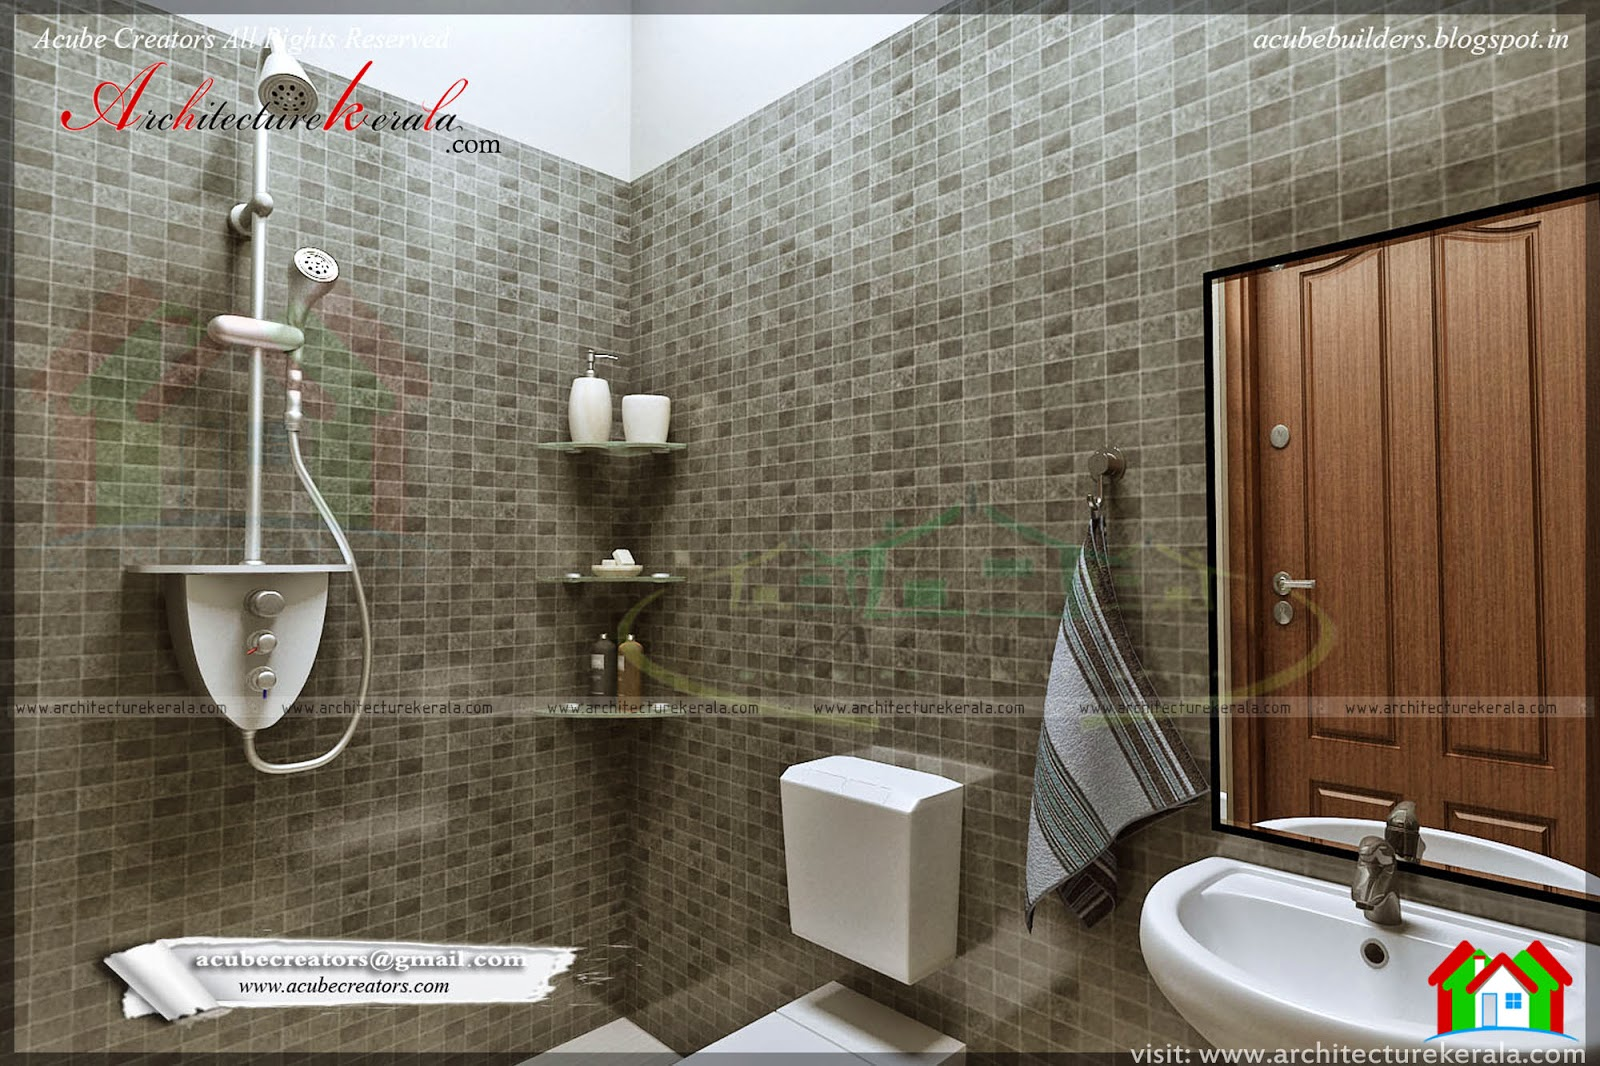 Modern Bathroom Design In Kerala interior design for bathroom in kerala